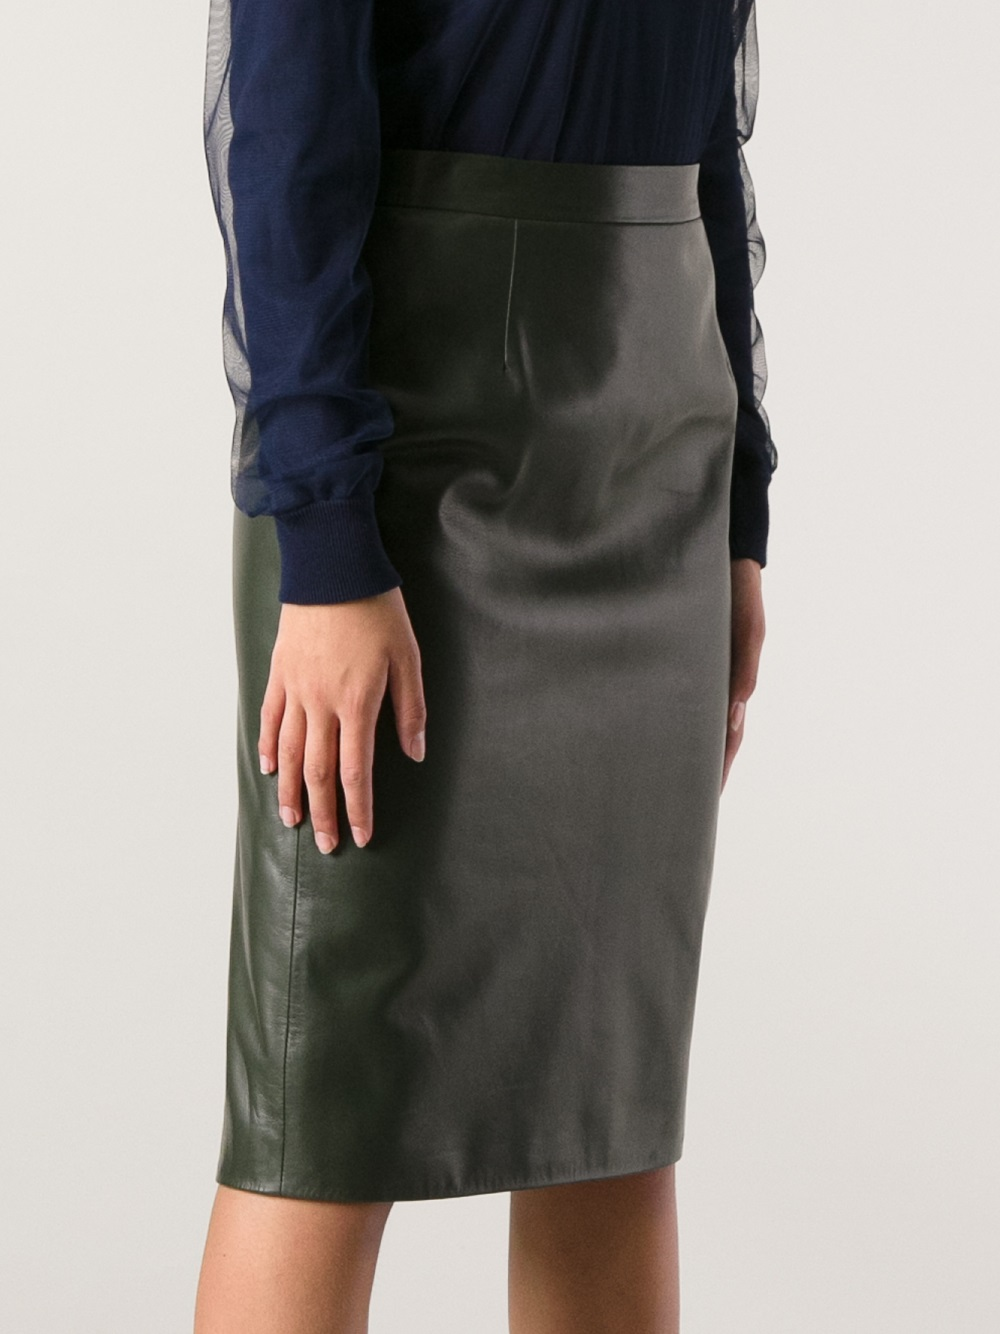 Gucci Gucci Leather Pencil Skirt in Green | Lyst